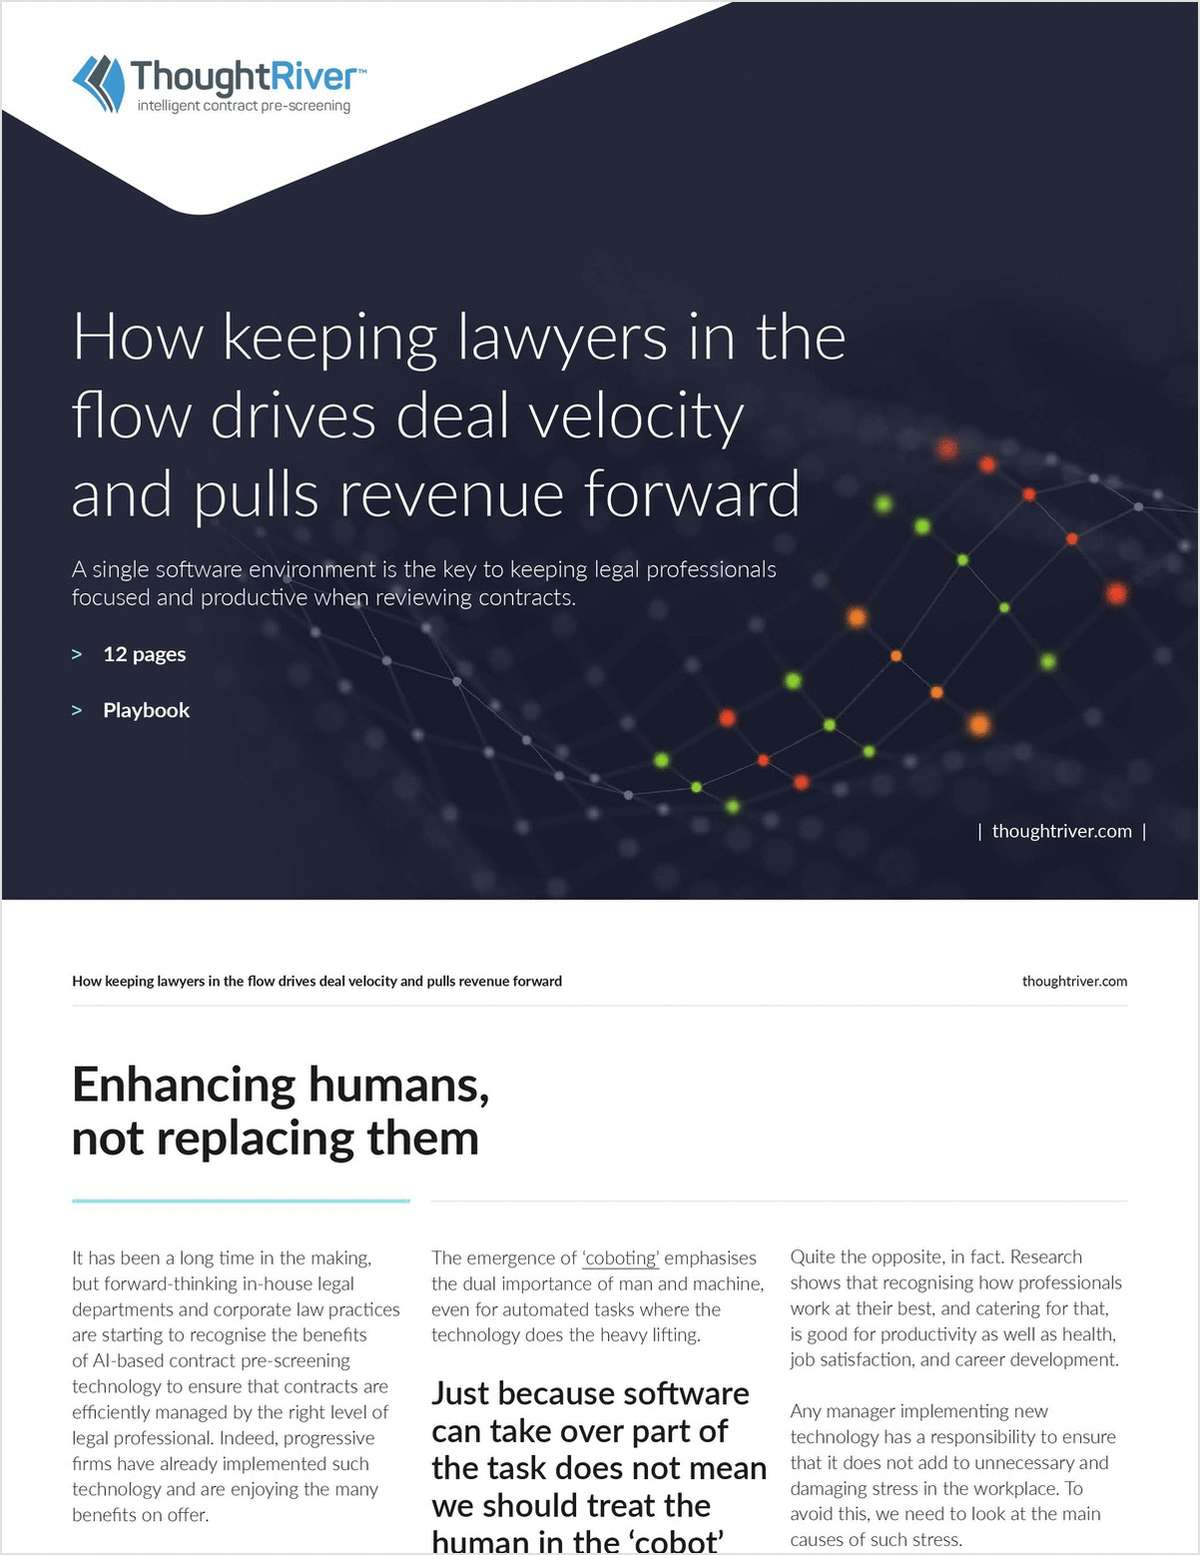 How Keeping Lawyers in the Flow Drives Deal Velocity and Pulls Revenue Forward